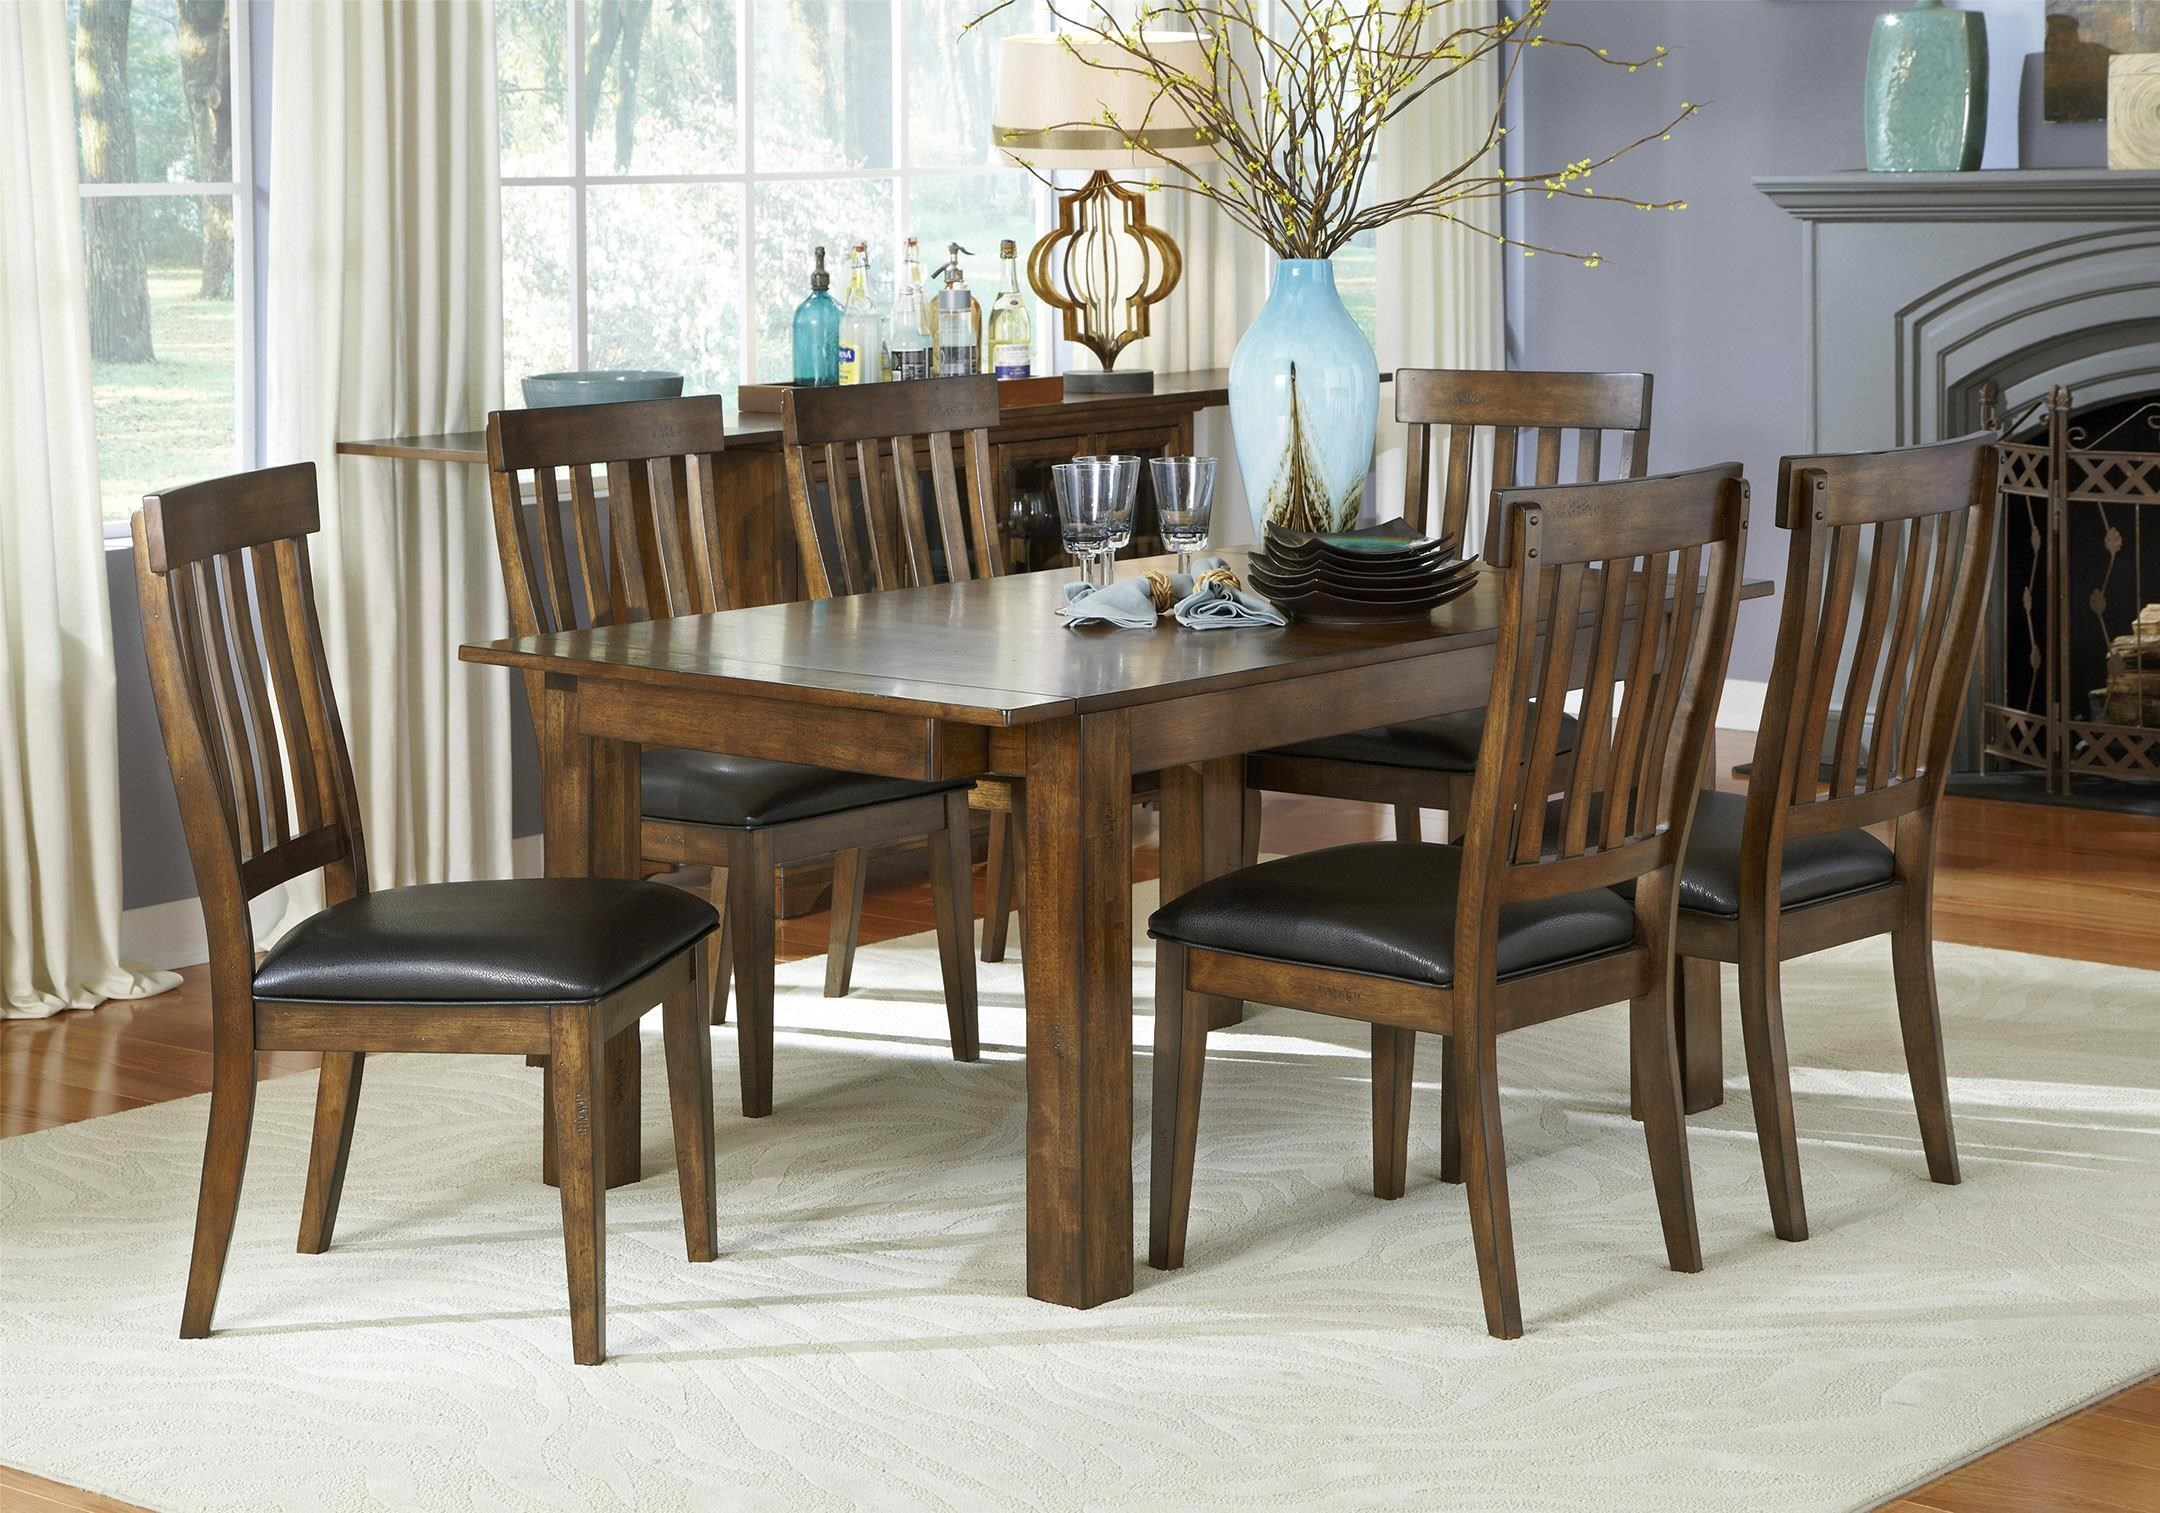 Winchester 5-Piece Tables and Chairs Set & Winchester 5-Piece Tables and Chairs Set | Ruby-Gordon Furniture ...